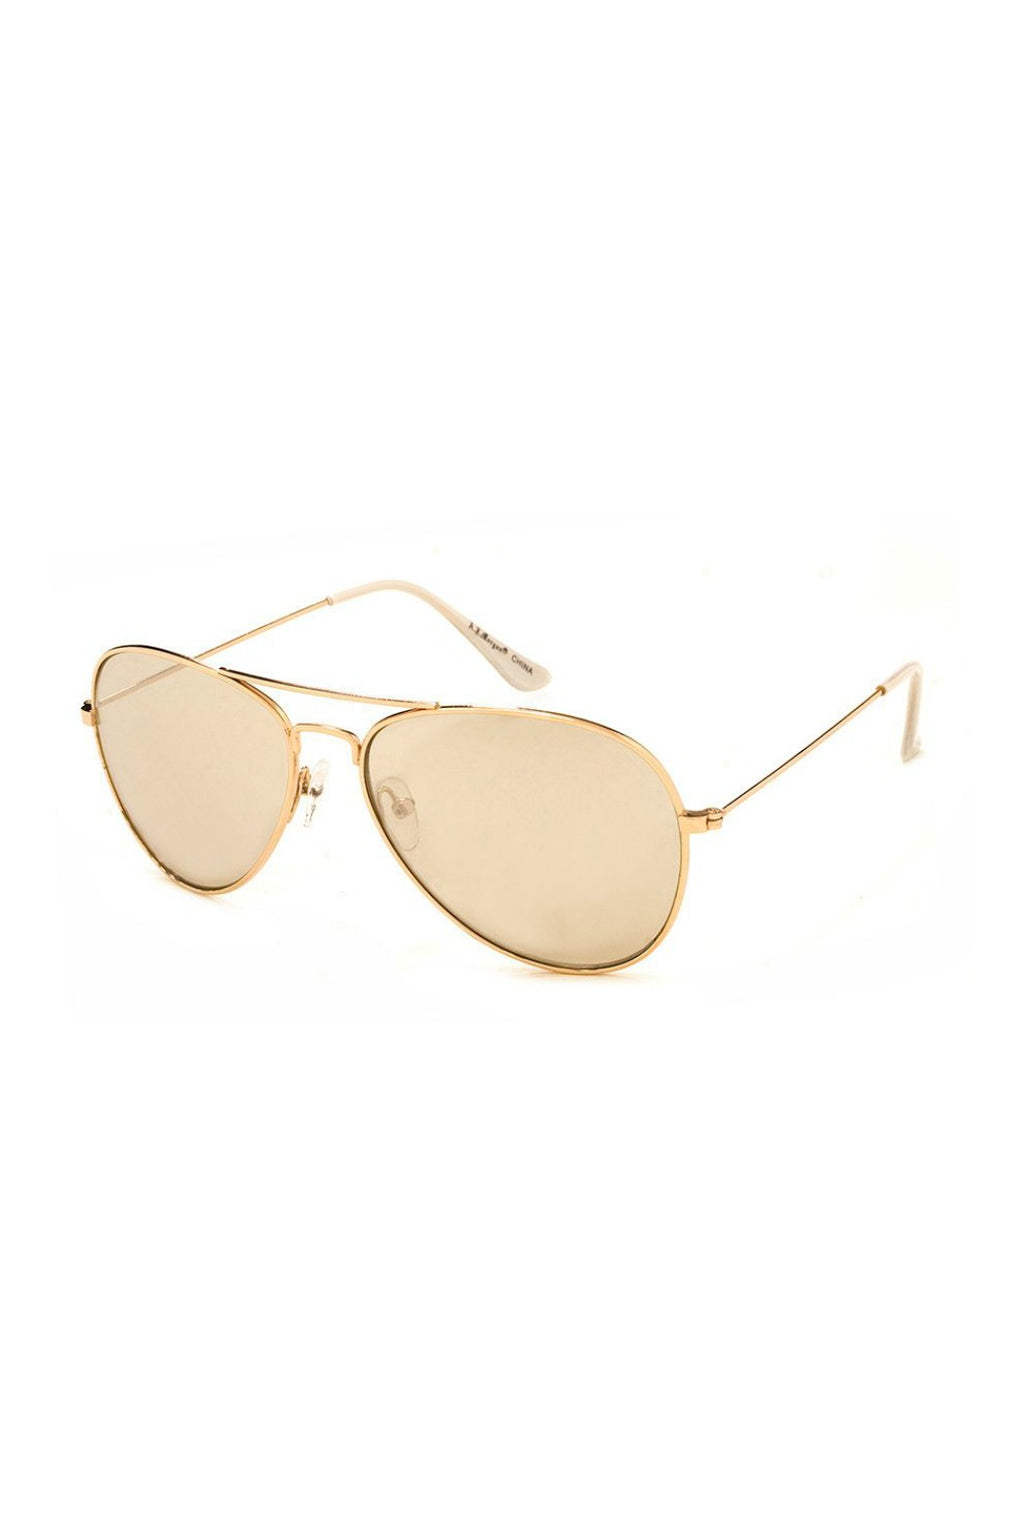 Chris Sunnies - Gold/Gold Mirror